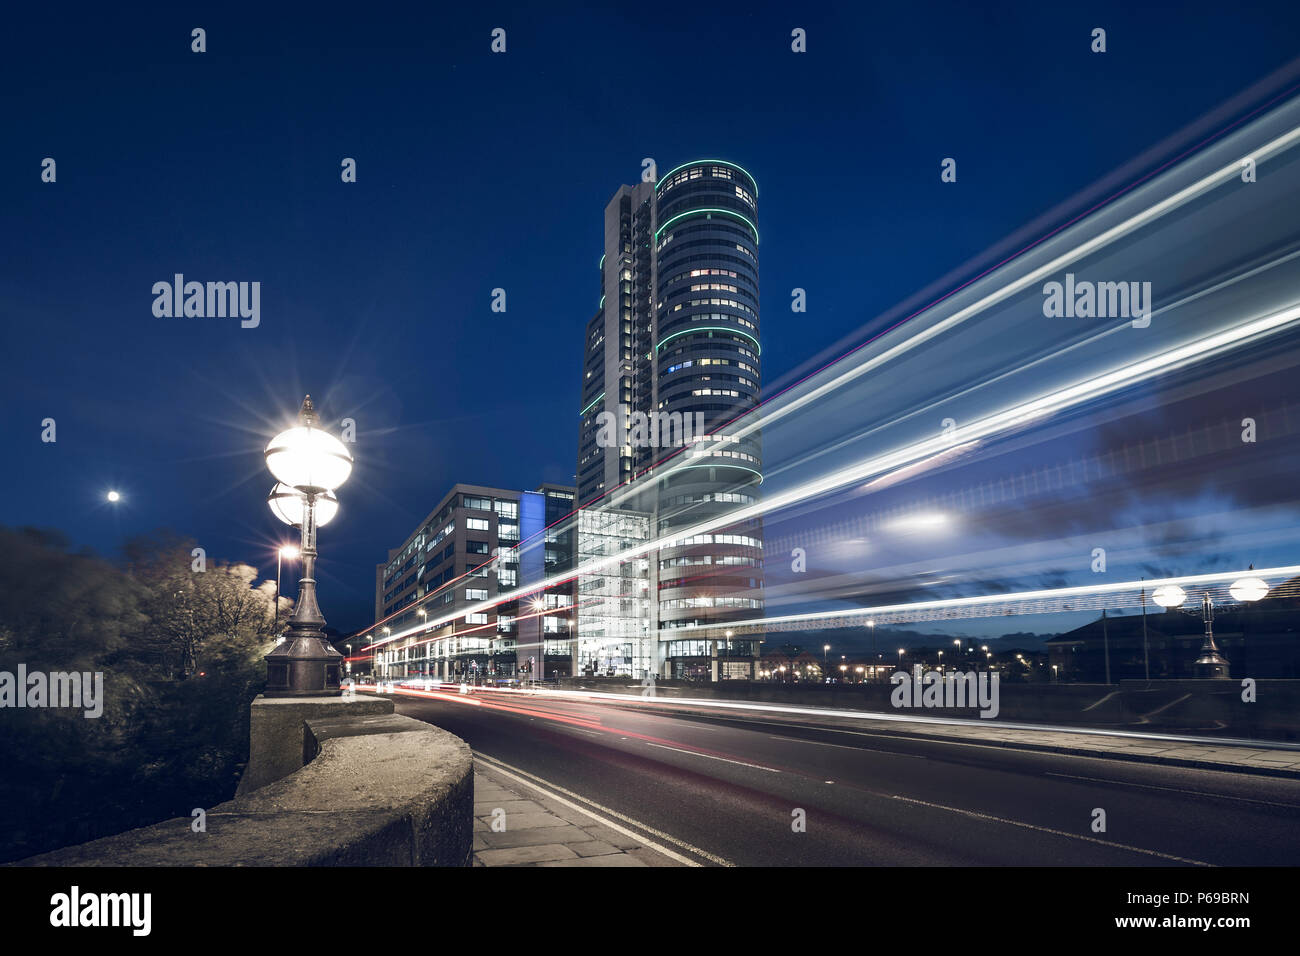 Dusk in Leeds, UK. Traffic leaves light trails with Bridge water place in the background. - Stock Image